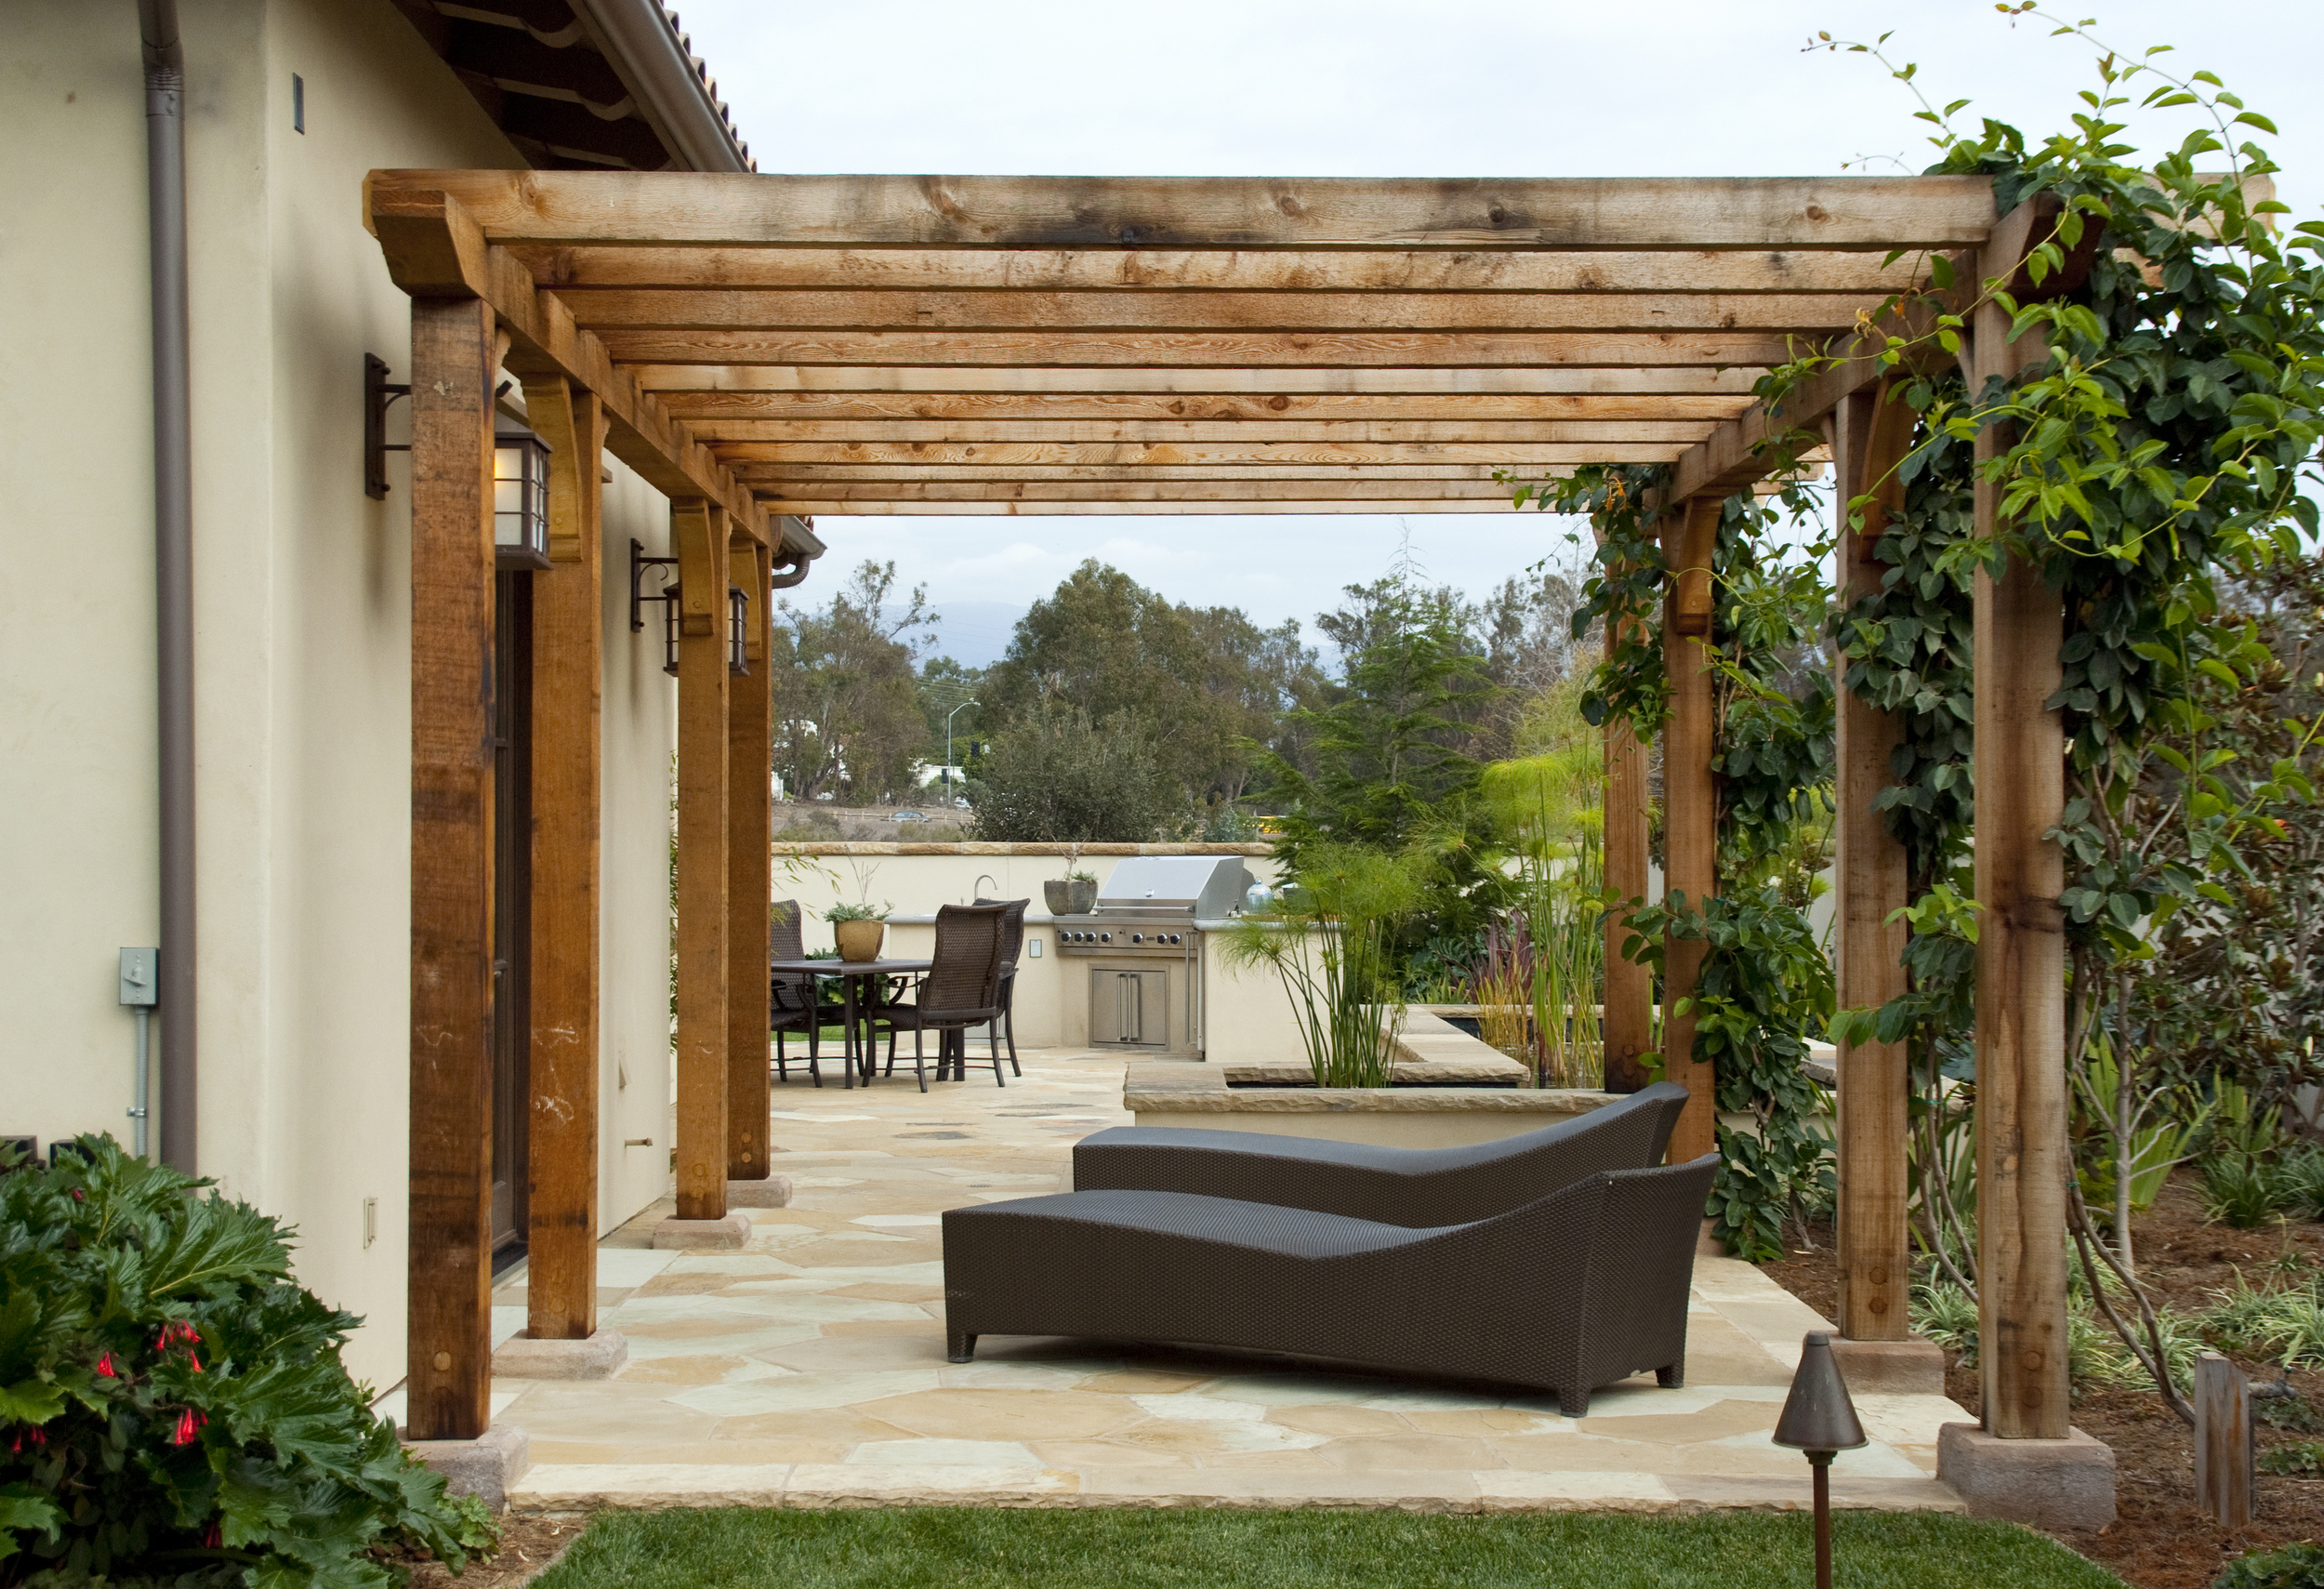 Either looking to BBQ with some friends or stretch out under a custom wood pergola with a good book and glass of local wine, Arroyo Seco Construction can create your perfect setting.